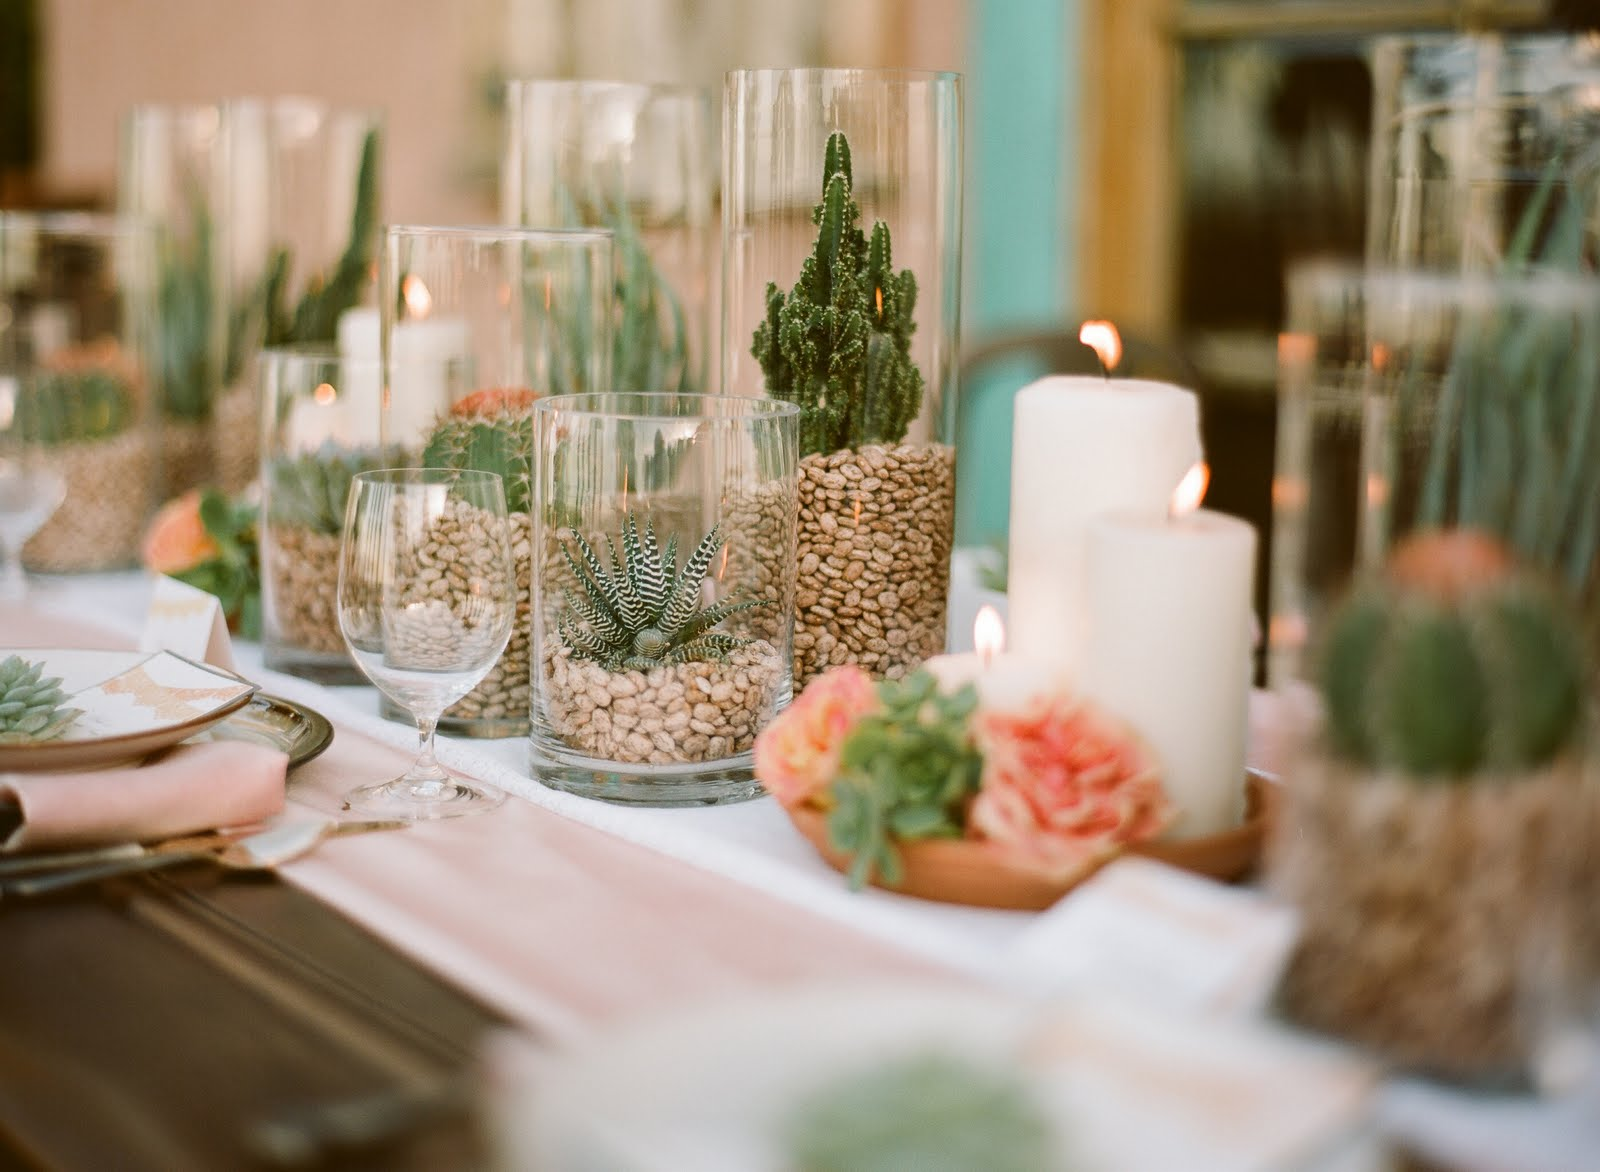 Spanish bridal fashion with mexican wedding inspiration for Table arrangements